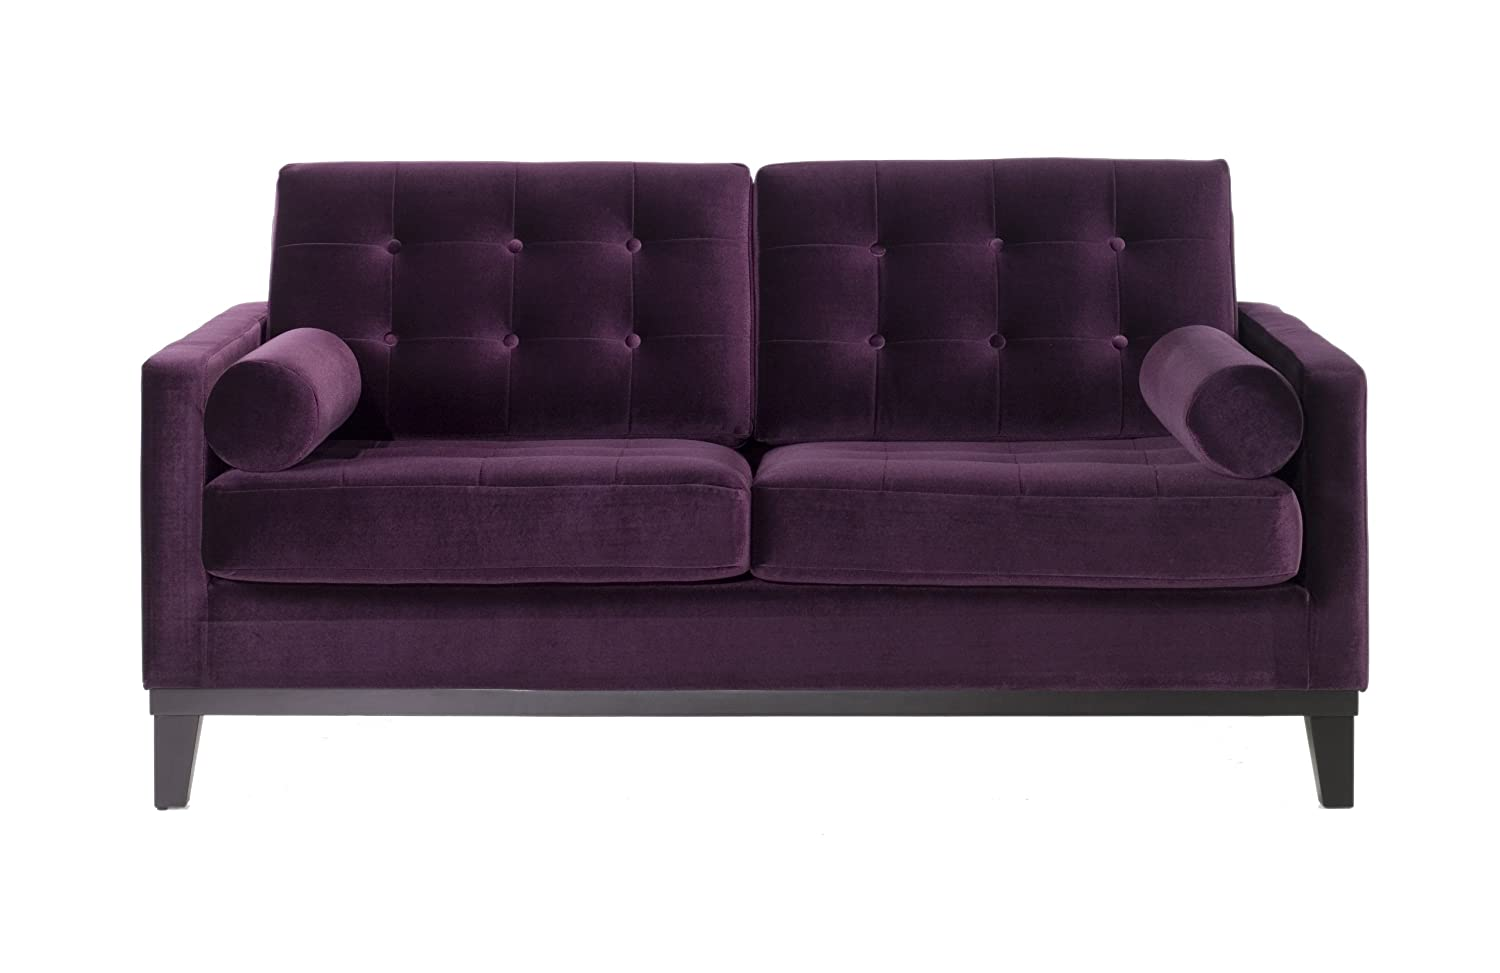 amazoncom armen living  centennial loveseat purple velvet  - amazoncom armen living  centennial loveseat purple velvet kitchen dining